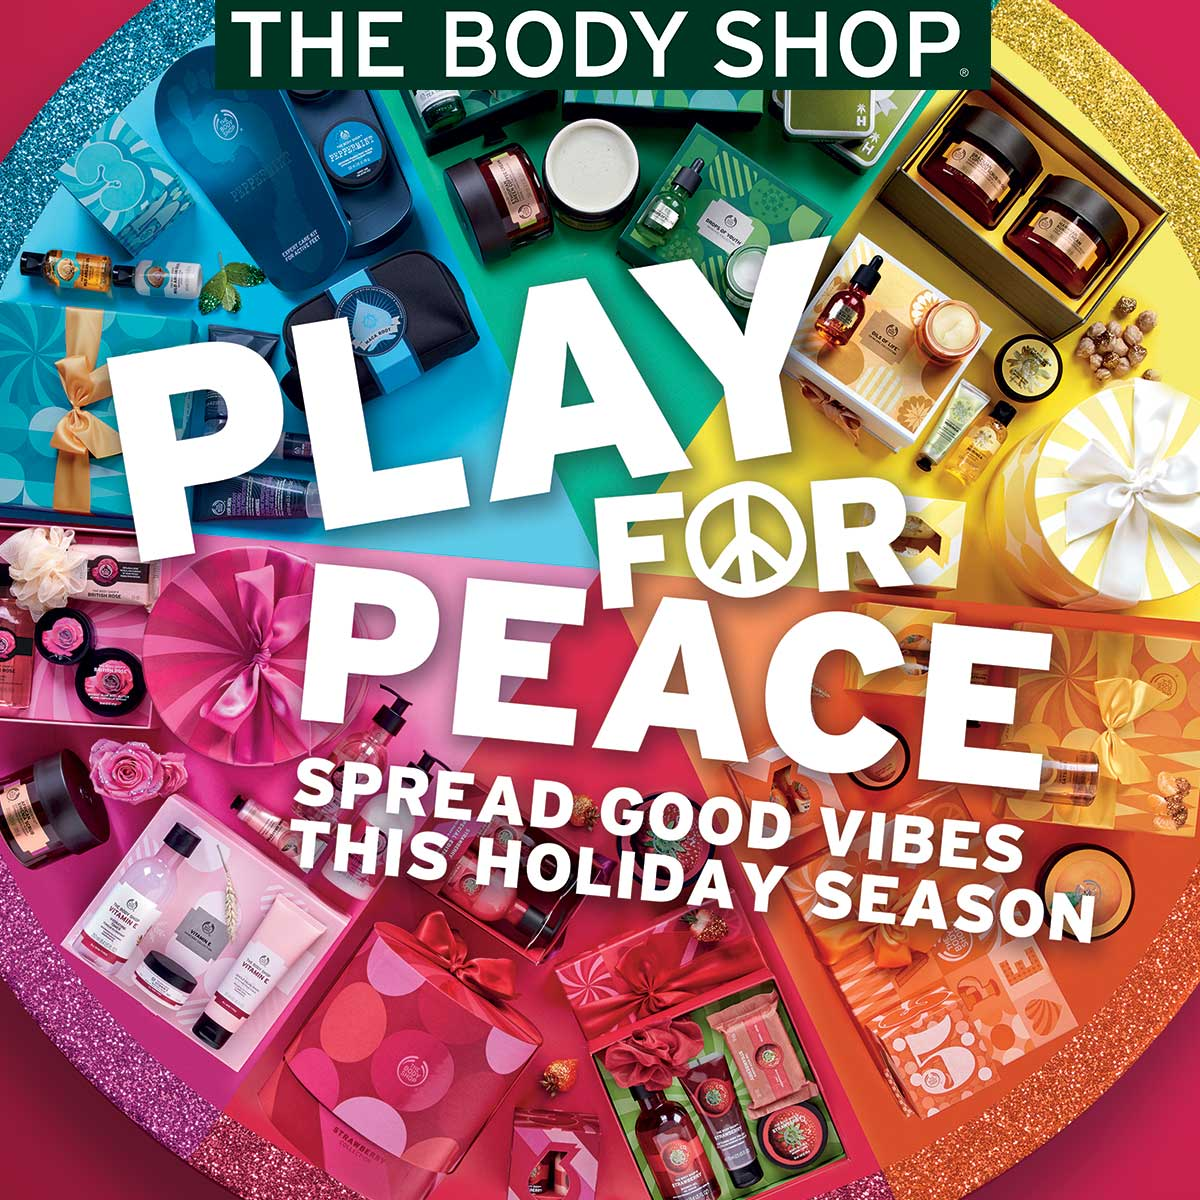 The Body Shop November 2017 Highlights